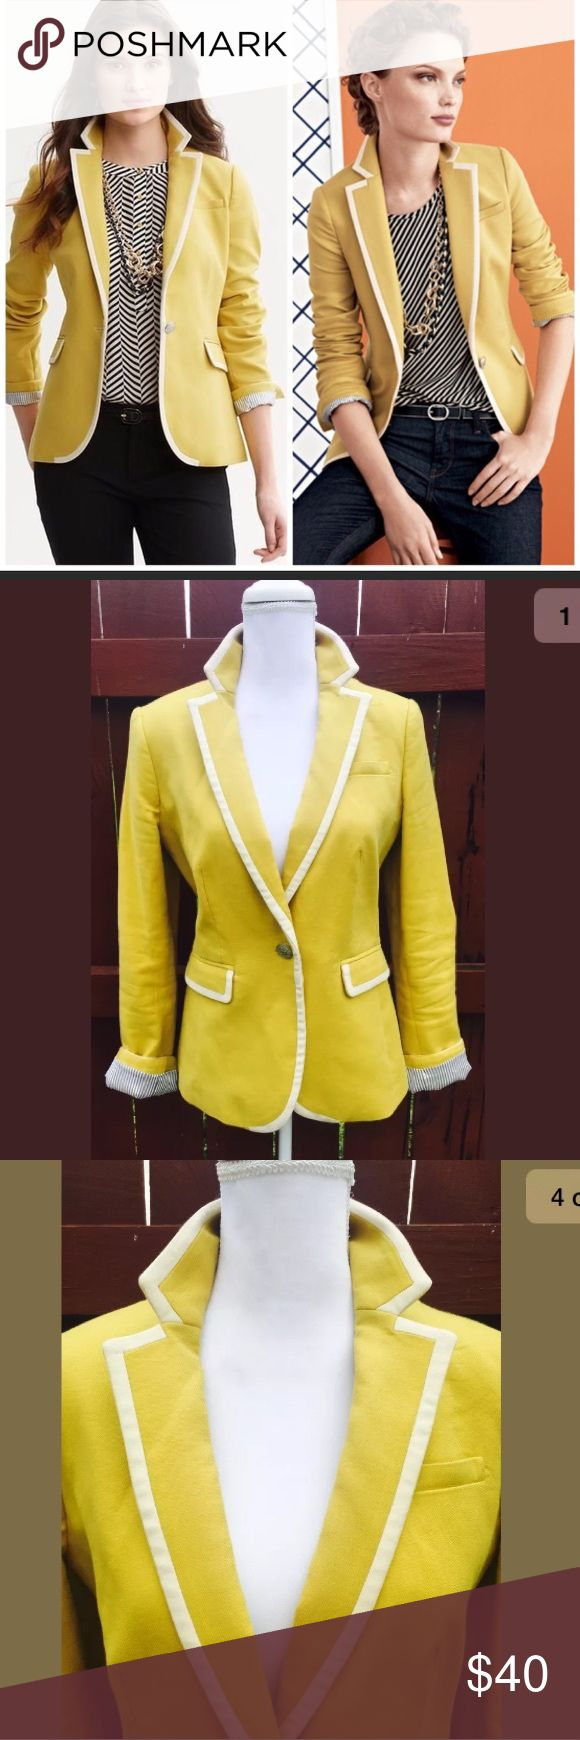 Banana Republic Sz 6 Mustard Yellow Lined Blazer Banana Republic Sz 6 Mustard Yellow & Ivory Lined Blazer Jacket Career Wear. In excellent condition! Banana Republic Jackets & Coats Blazers